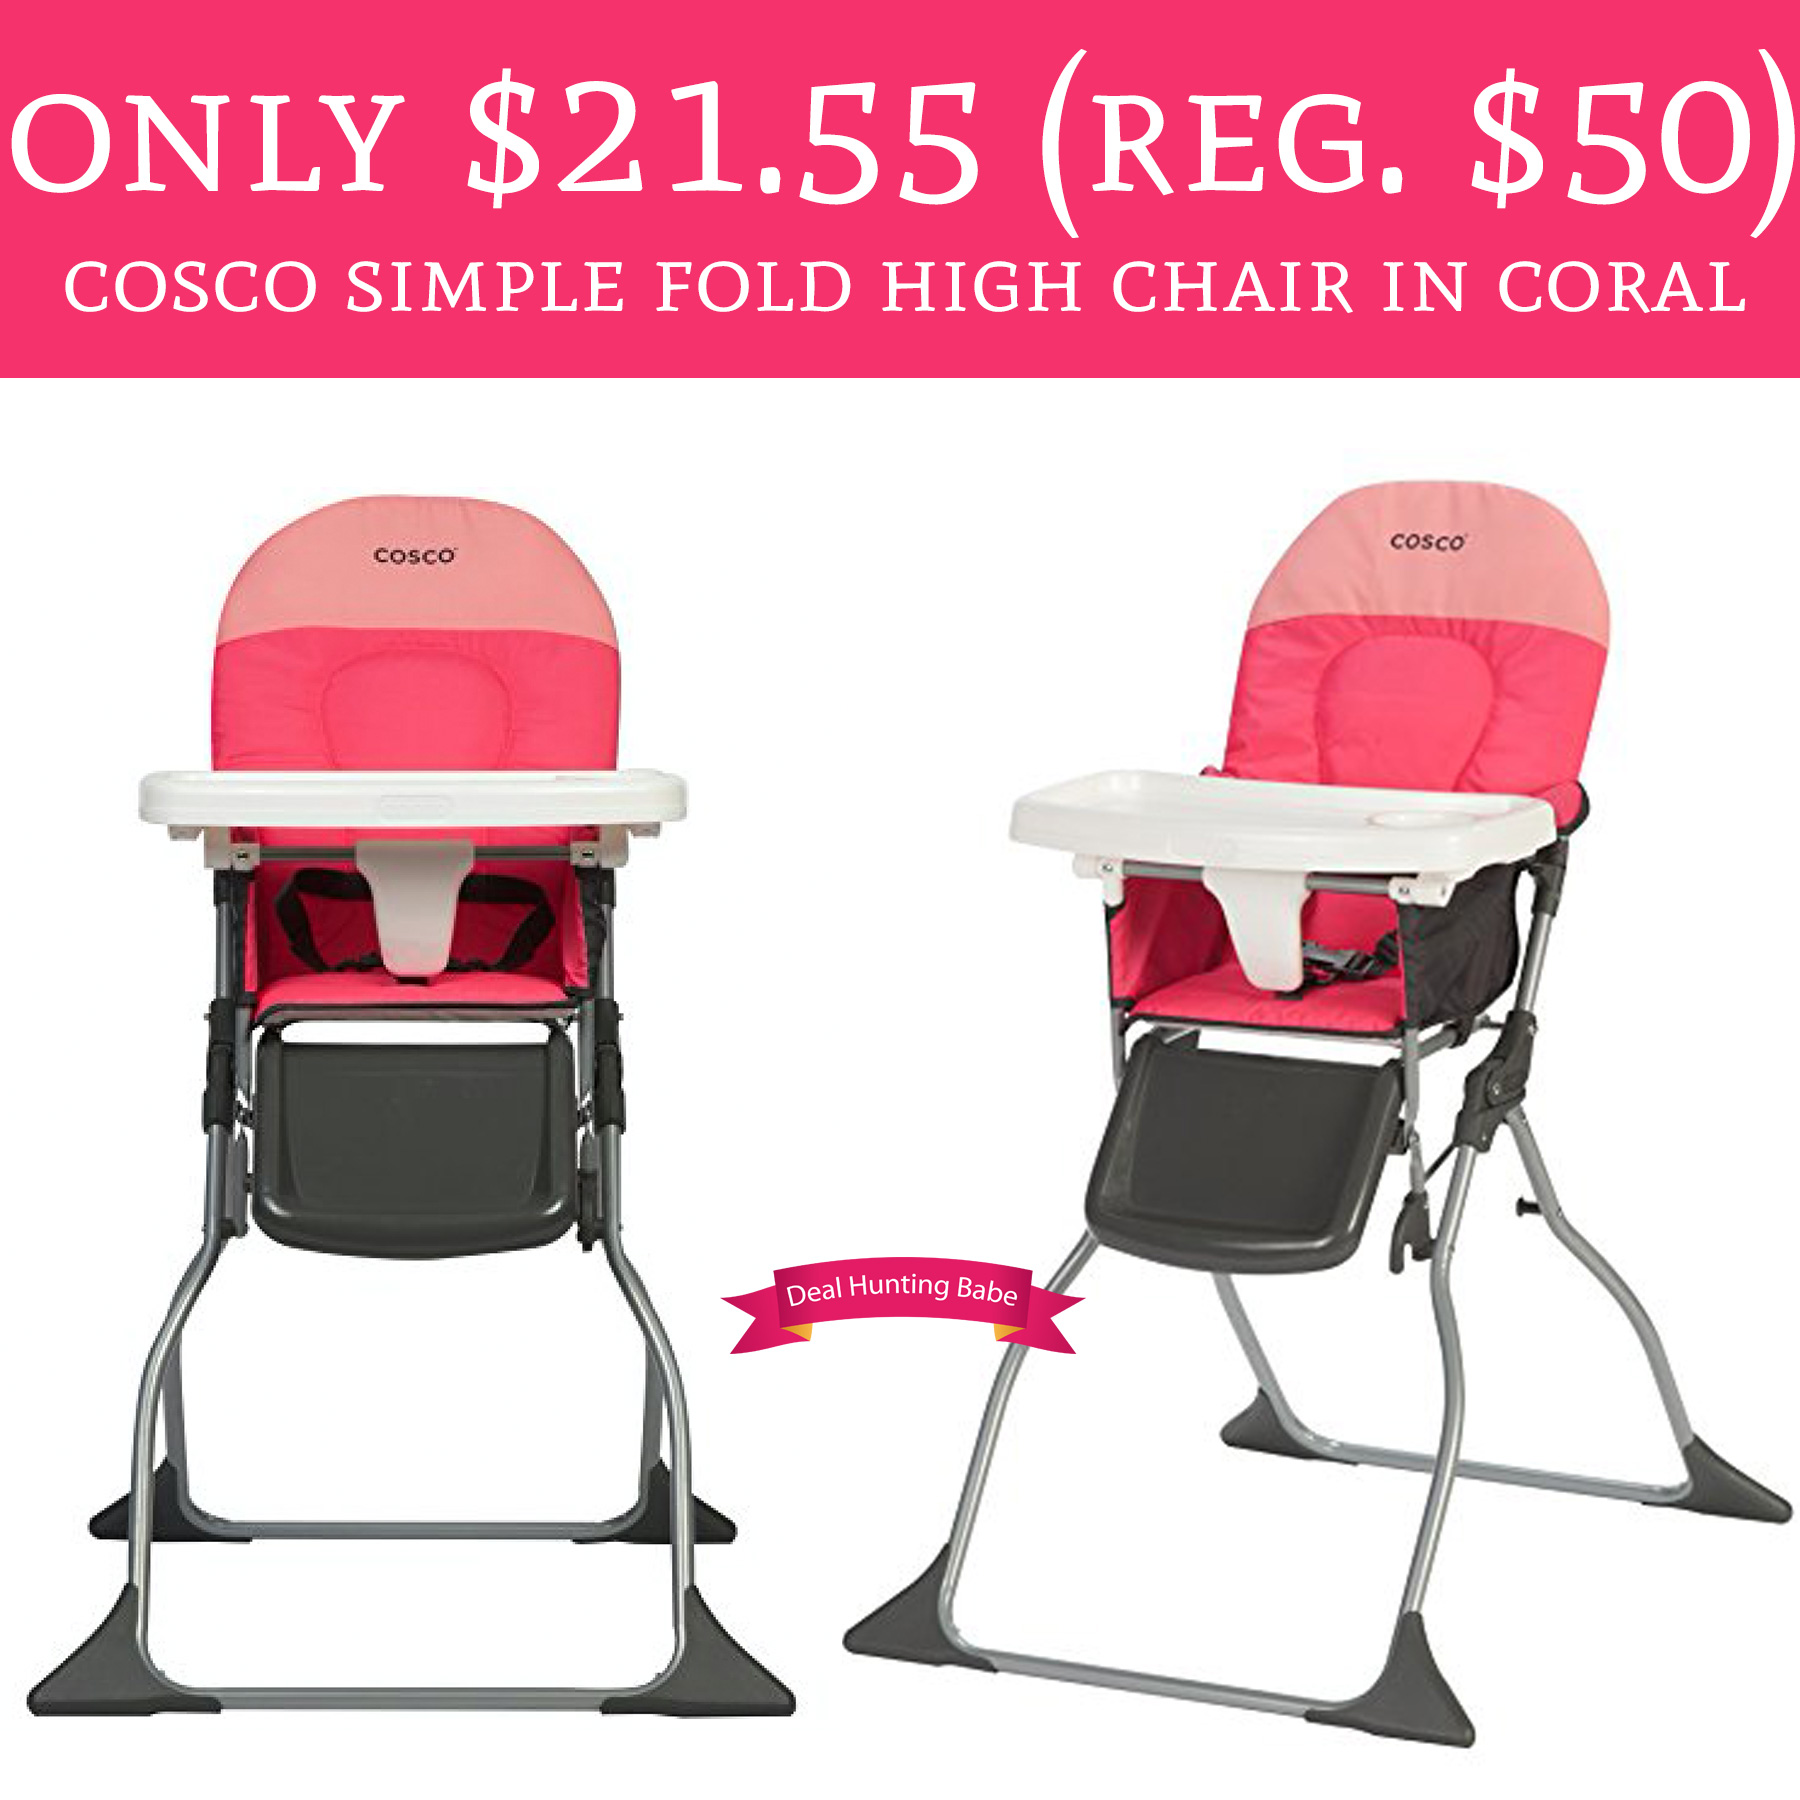 High Chair Deals Wow Only 21 55 Regular 50 Cosco Simple Fold High